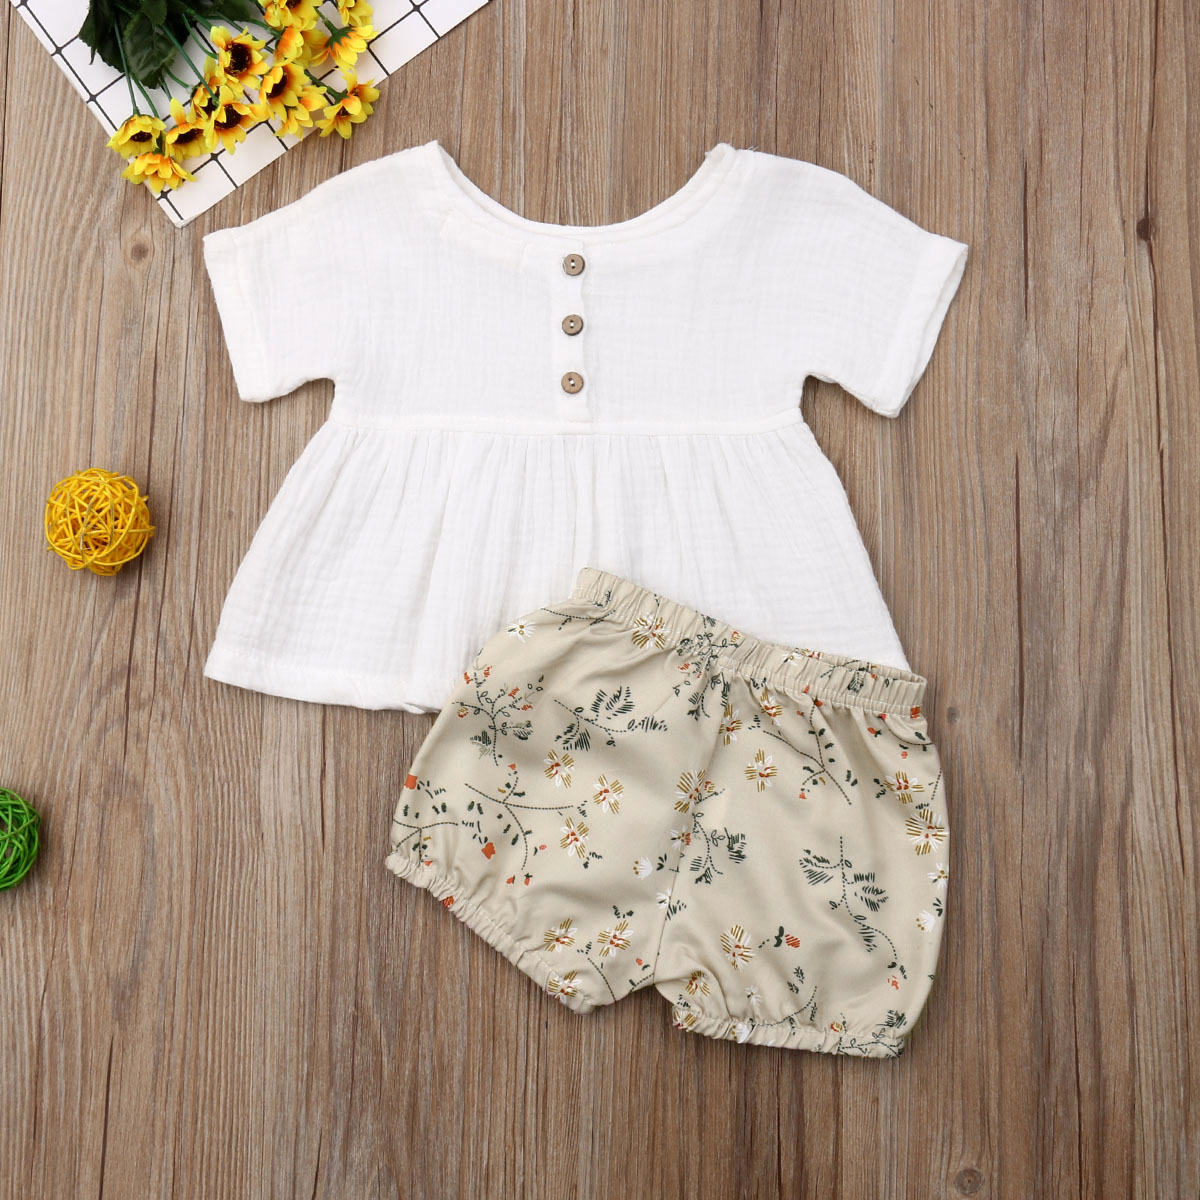 Newborn Baby Girl Clothes Short Sleeve Ruffle Top+Flower Print Short Pants 2pcs Outfits Cotton Clothes